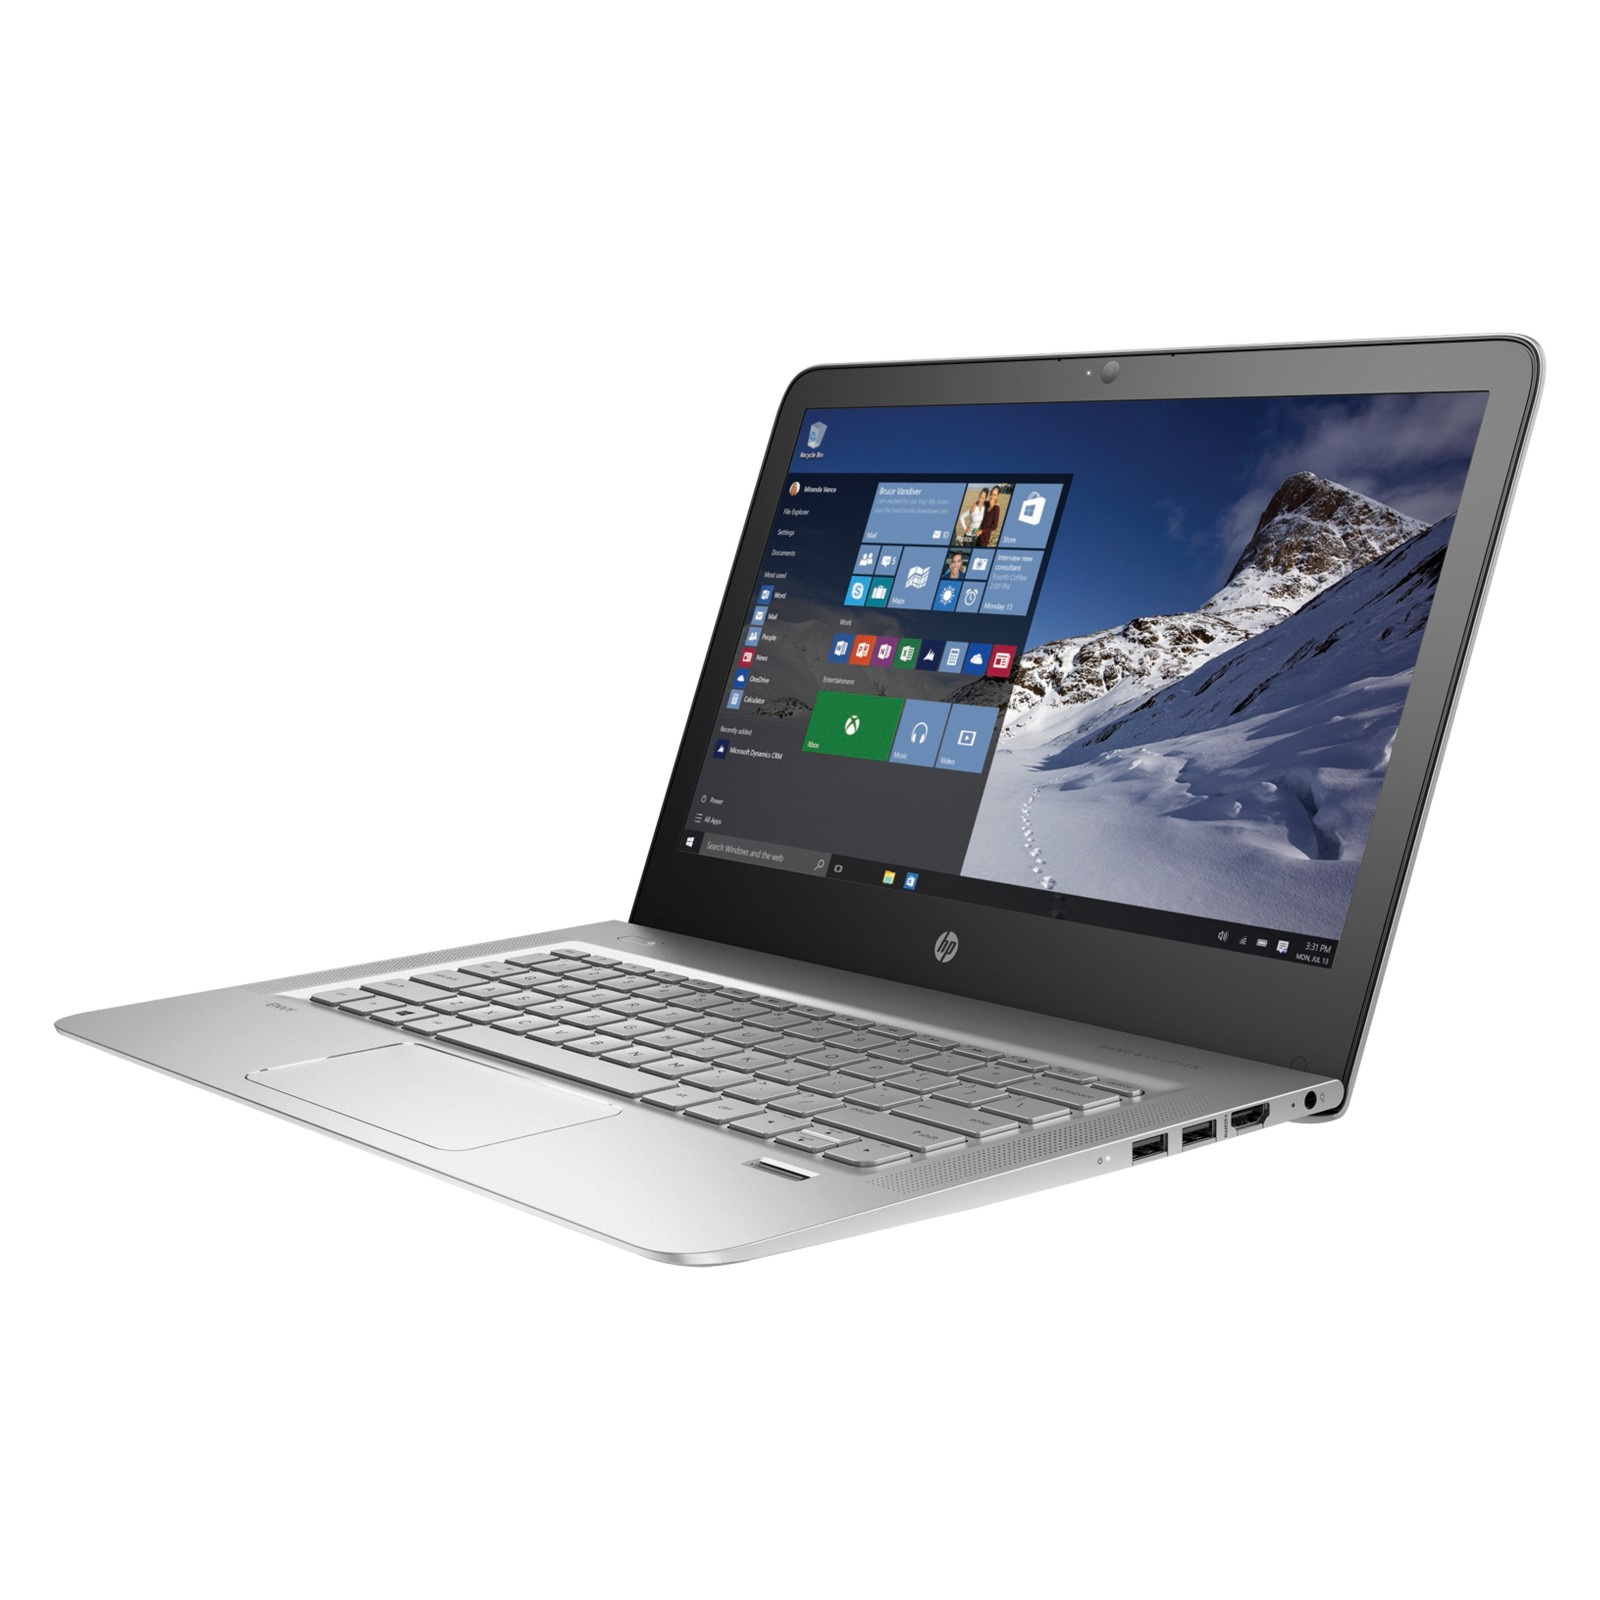 HP ENVY 13-d006na Laptop